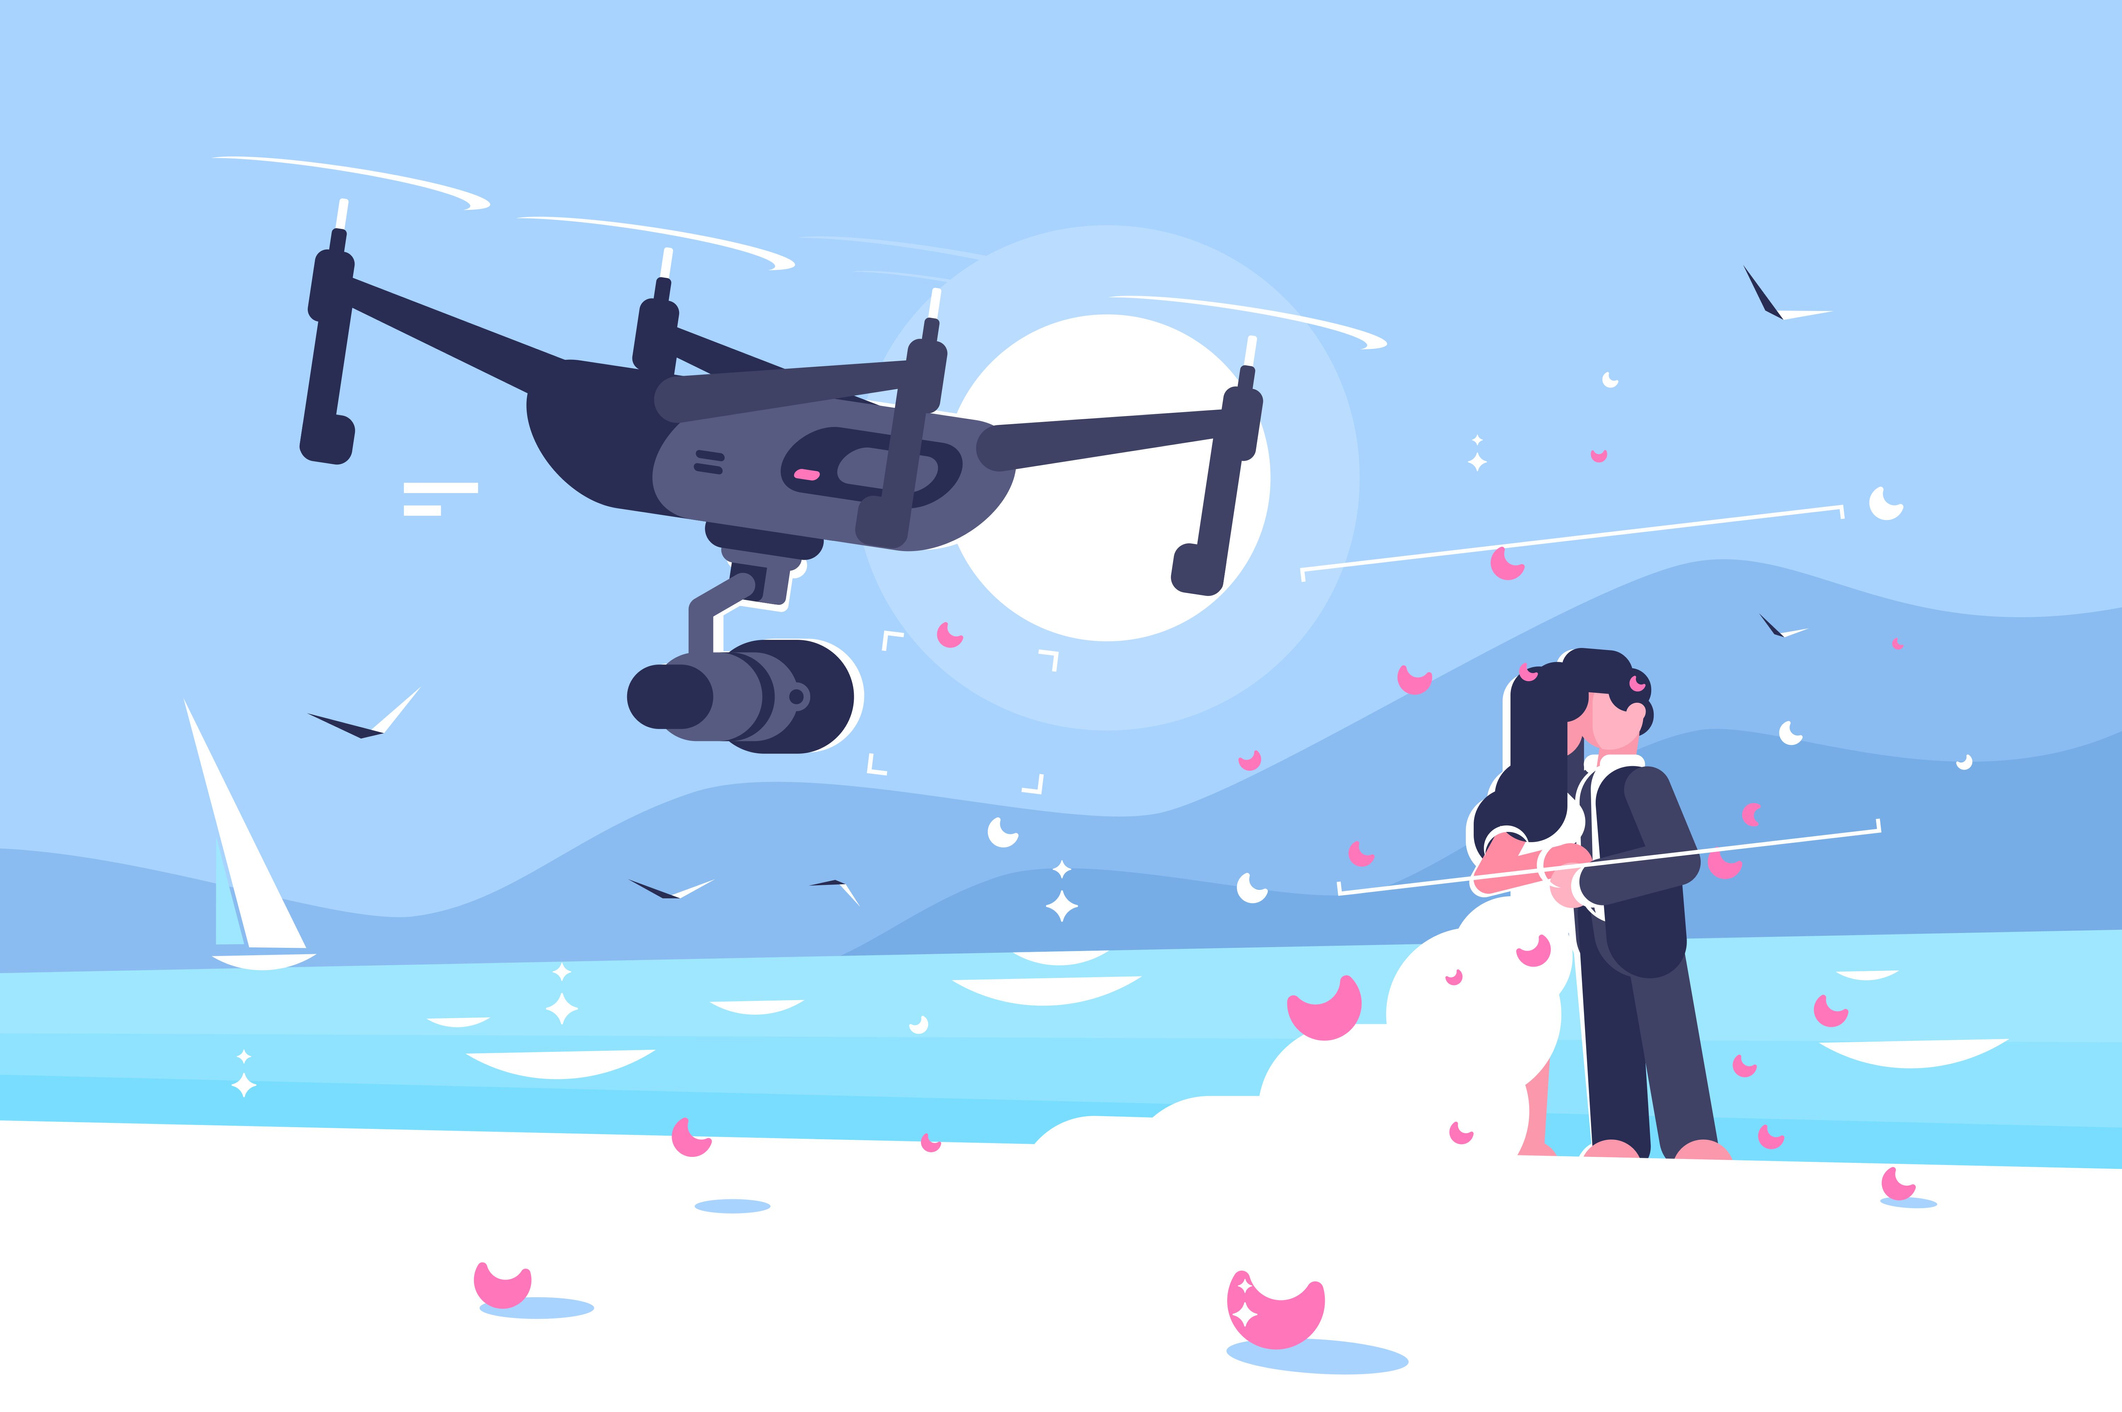 The 3 best professional wedding photography drones for 2019